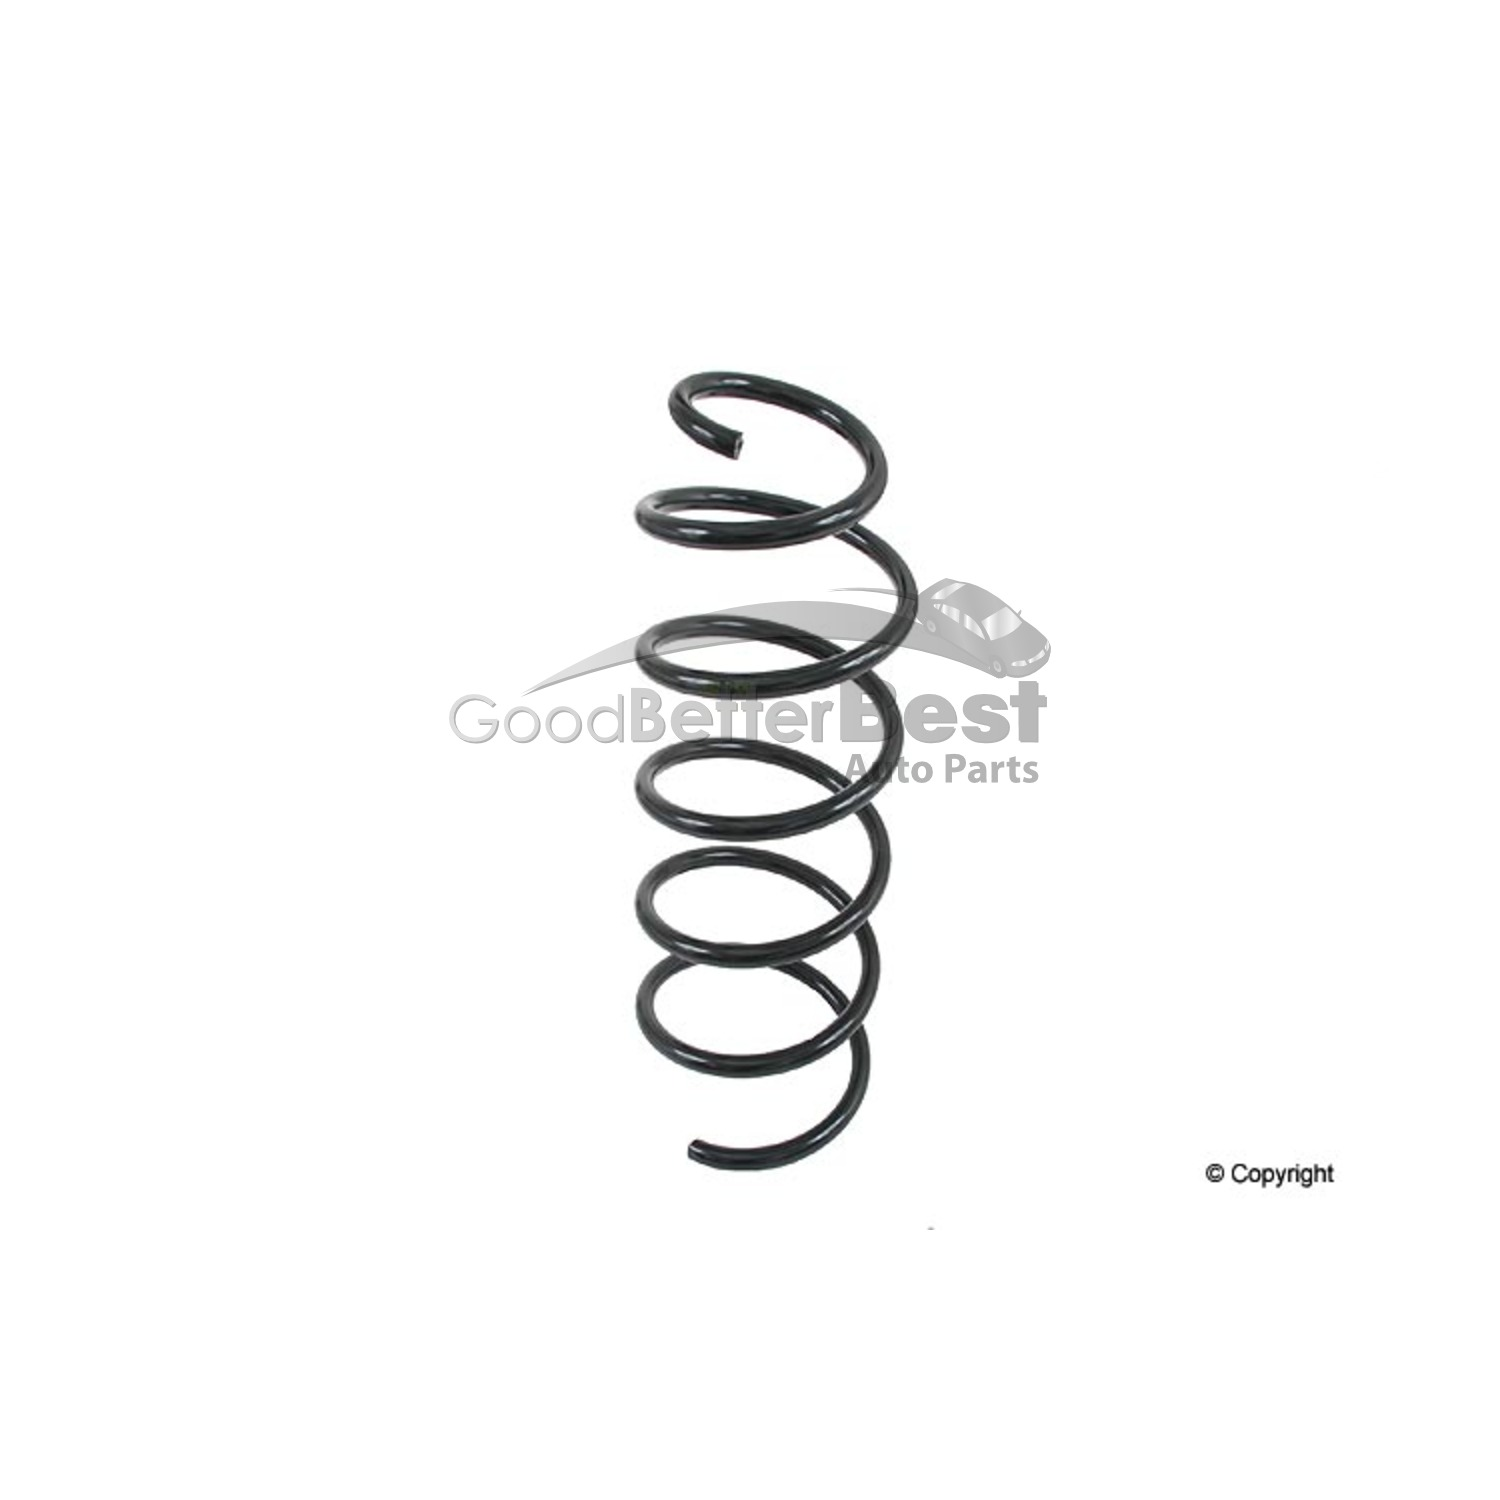 One New Lesjofors Coil Spring Front 4095830 9492226 for